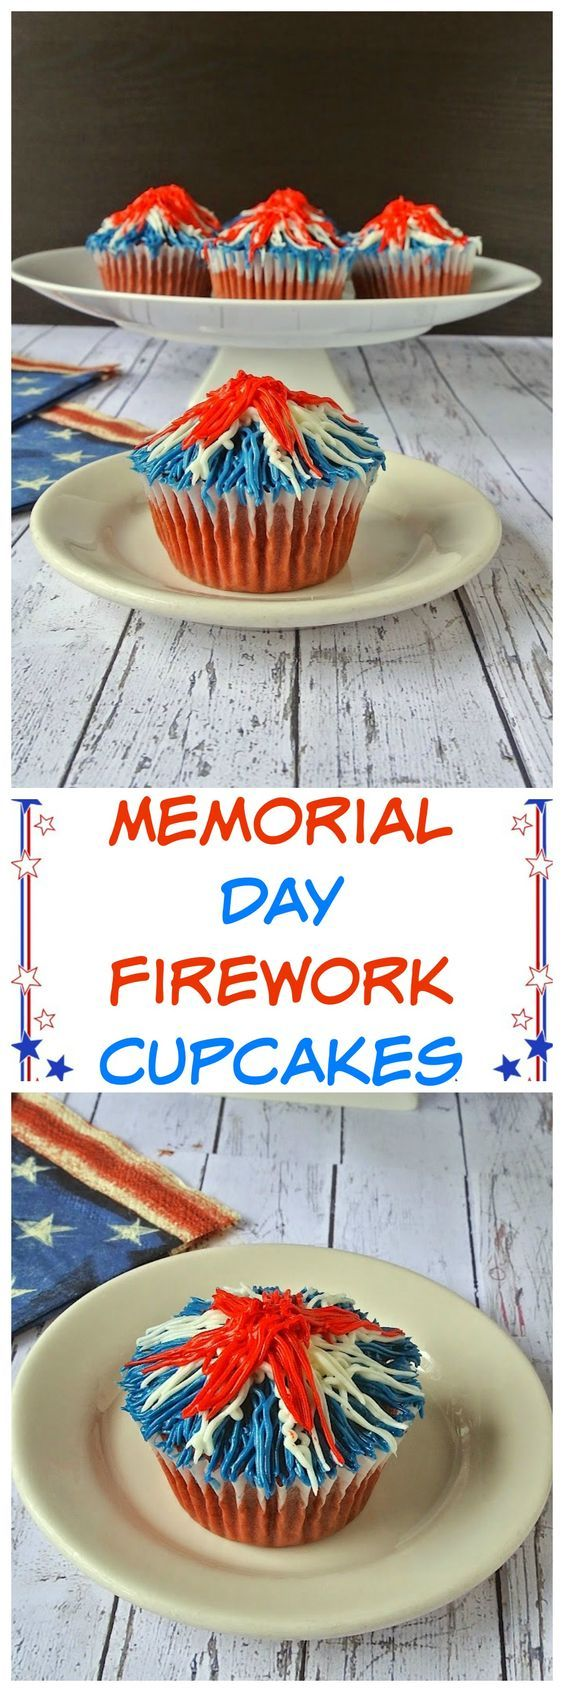 Memorial Day firework cupcakes. Red velvet cupcakes adorned with the red, white and blue. These patriotic Memorial Day firework cupcakes will be the star of your Memorial Day barbecue.